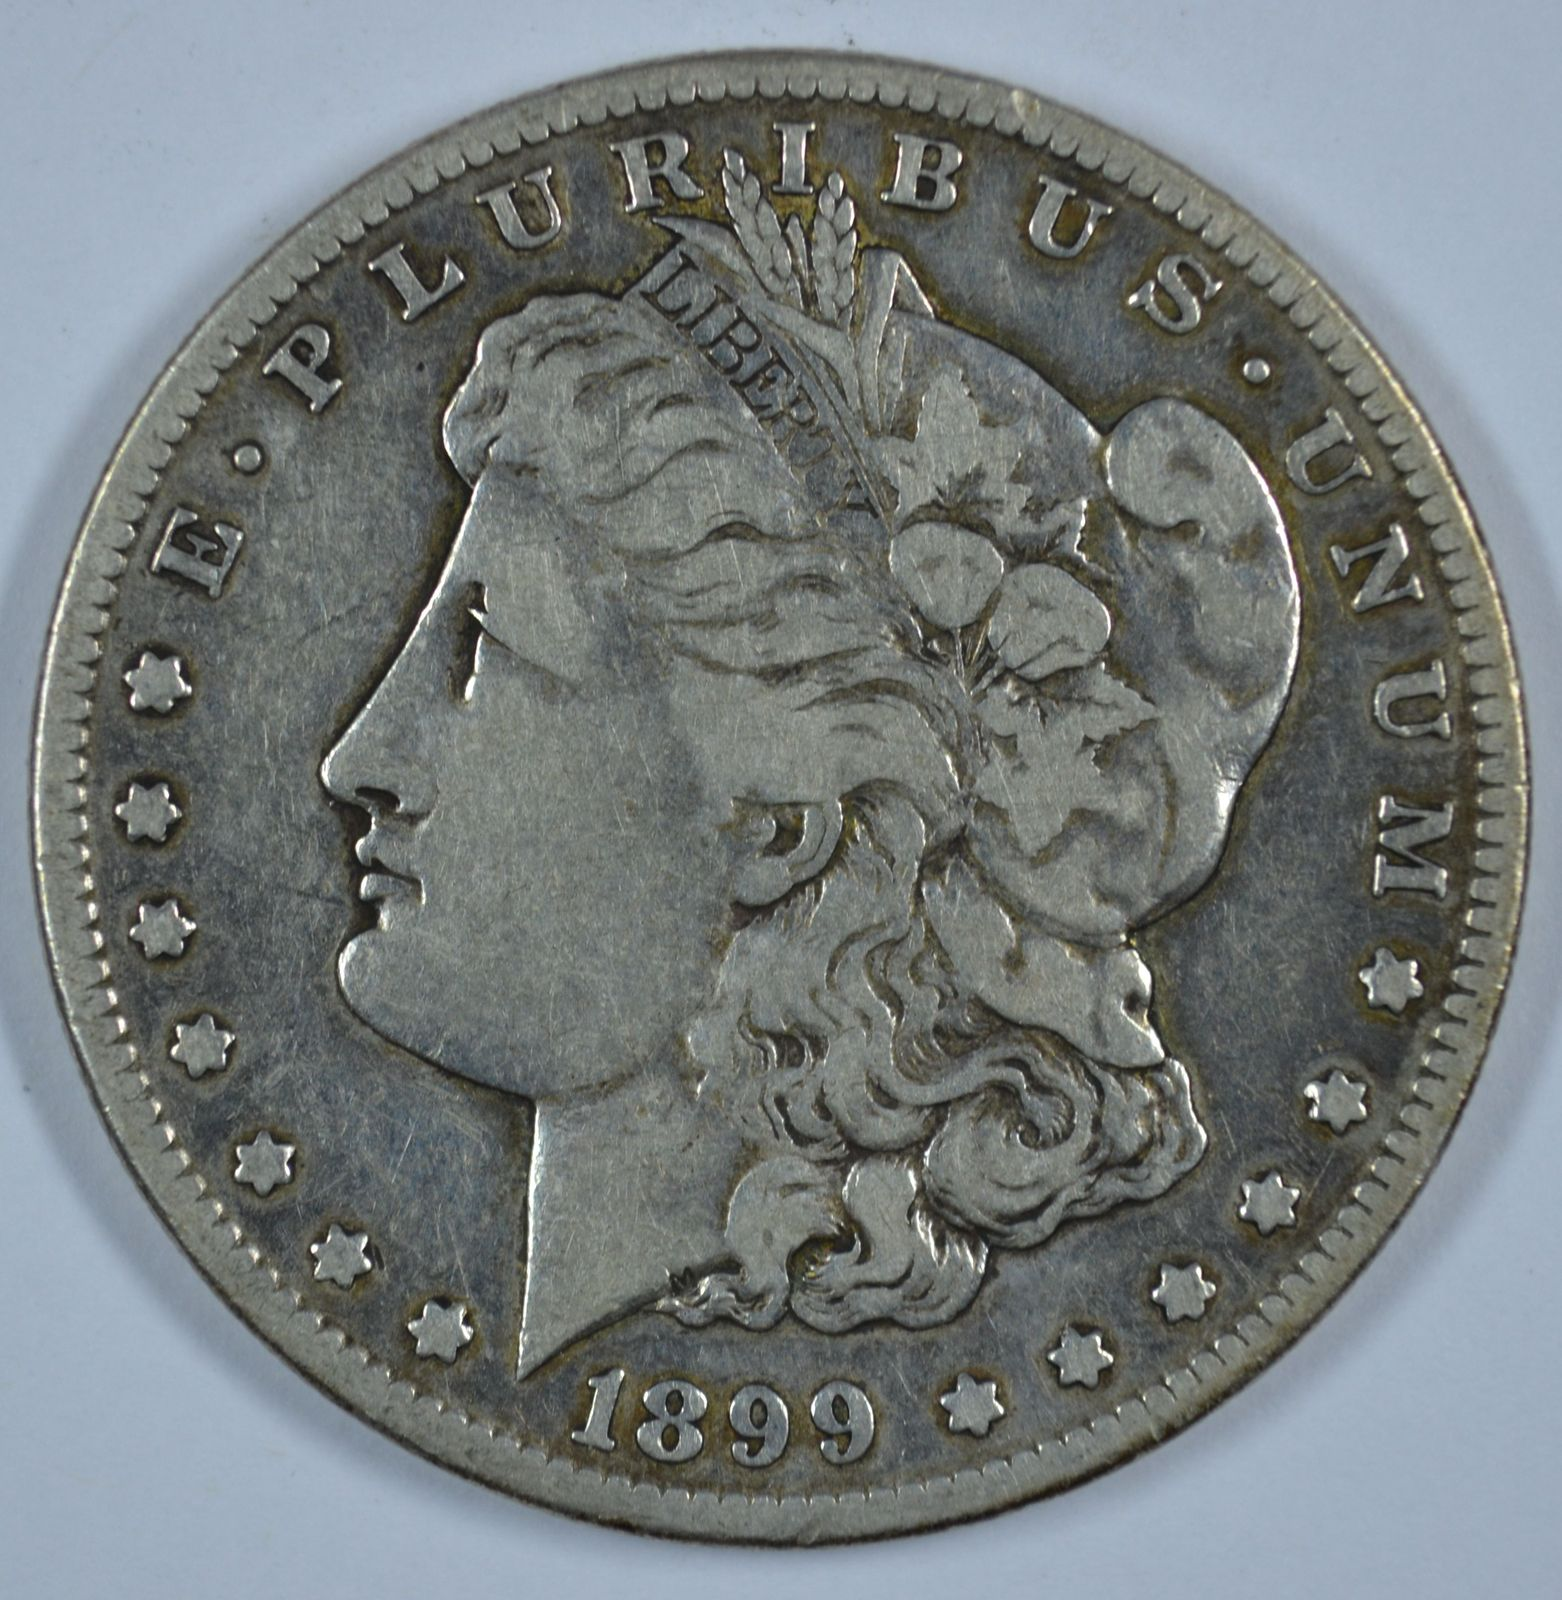 Primary image for 1899 S Morgan circulated silver dollar